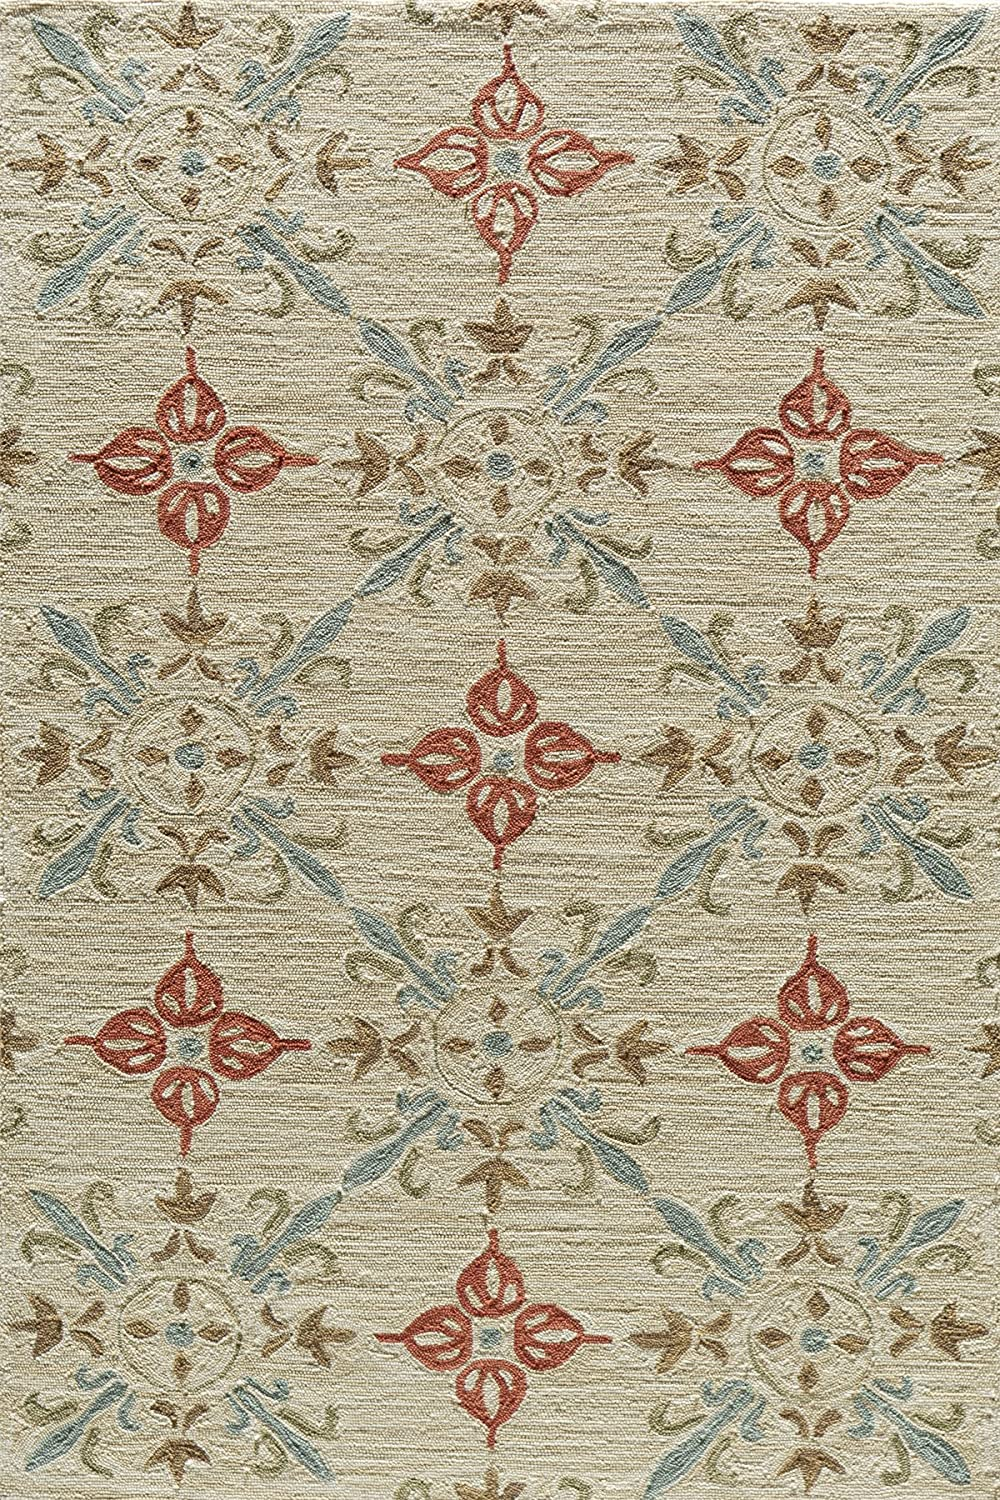 Sand 2/'3 x 7/'6 Runner Inc DROPSHIP Momeni Rugs SUMITSUM-1SND2376 Summit Collection 23 x 76 Runner Hand Knotted Transitional Area Rug